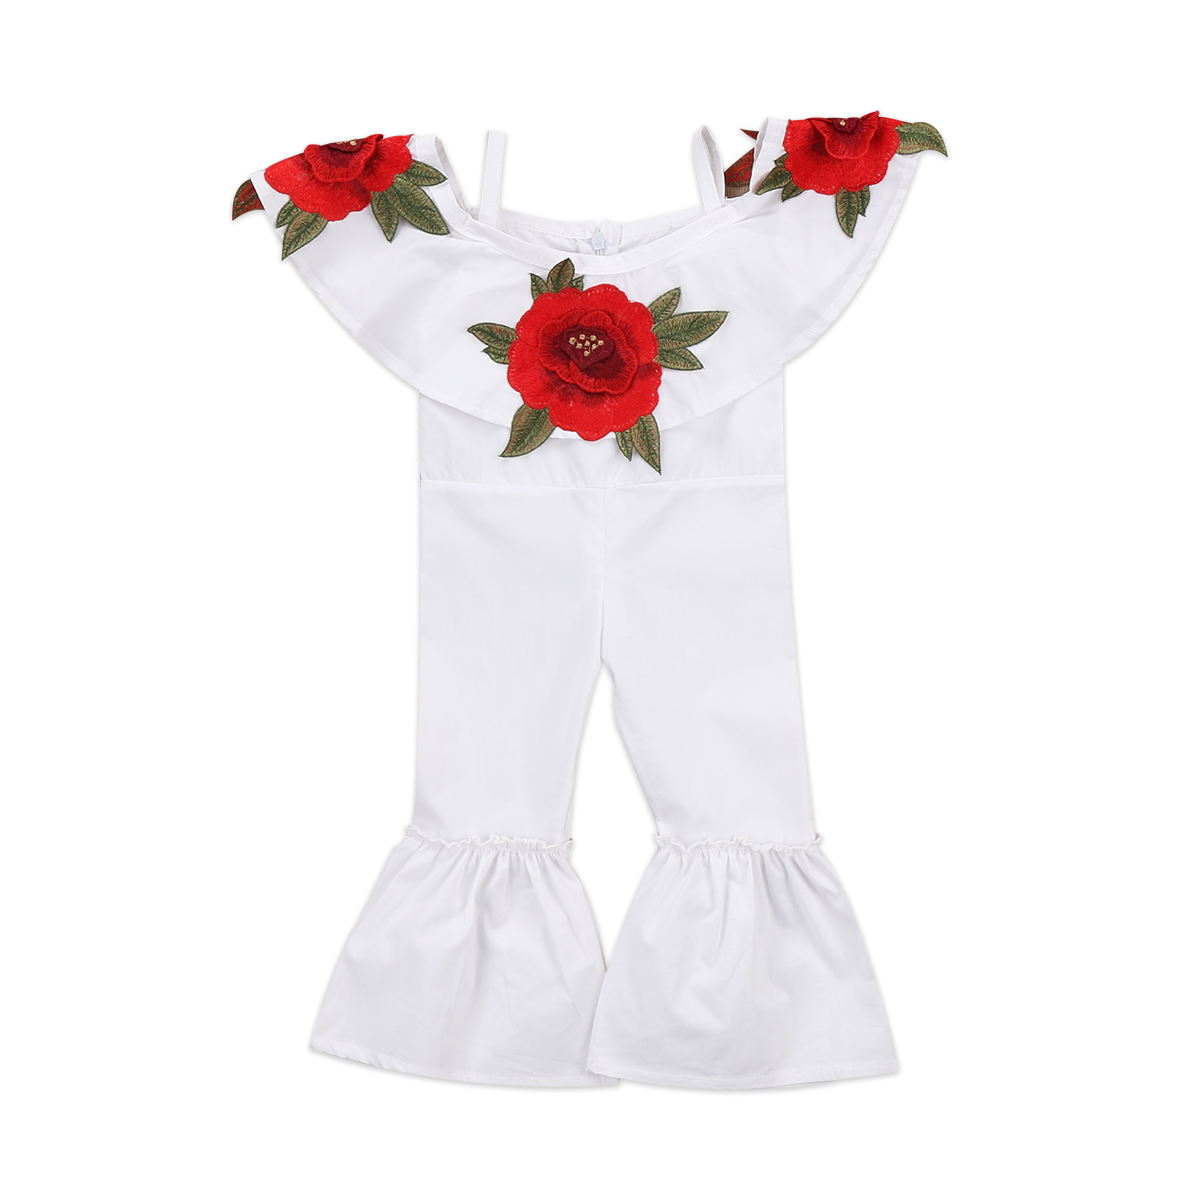 Kids Infant Baby Girls Clothing Romper Short Sleeve Flower Cute Jumpsuit Clothes Outfits Sunsuit Girl cute toddler infant baby girl boy xmas clothes long sleeve romper jumpsuit pajamas xmas clothing warm outfits au